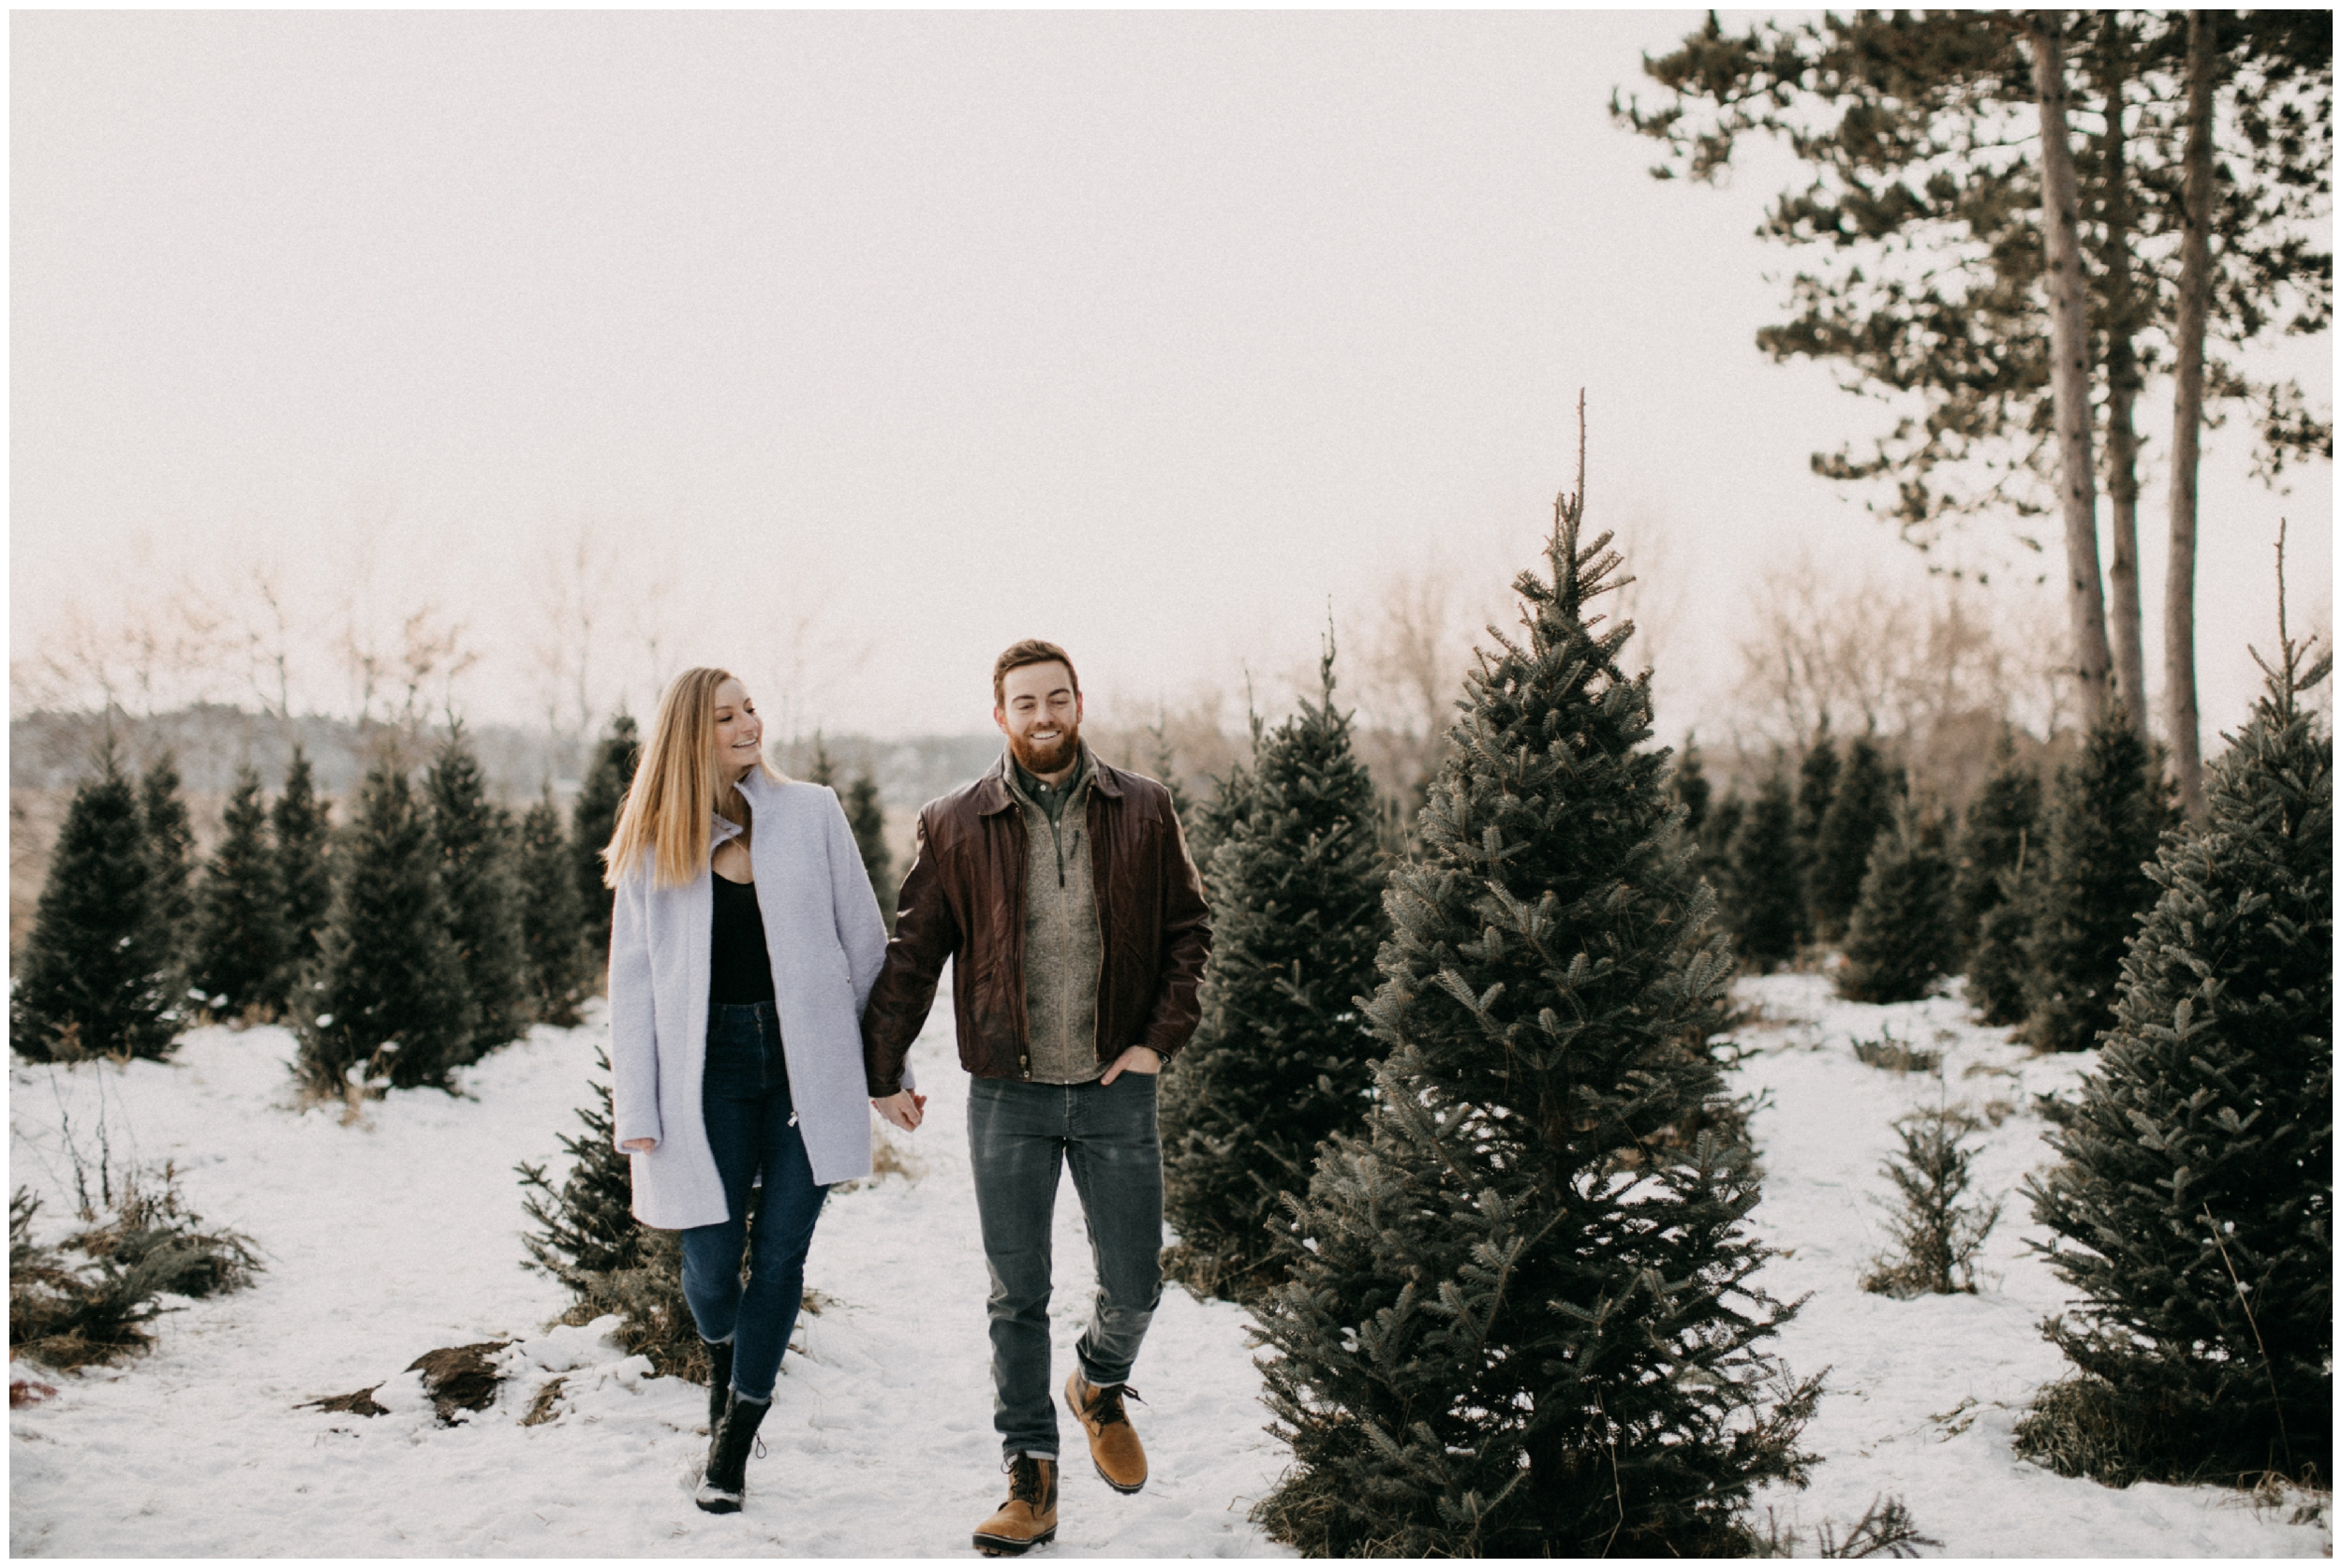 Outdoor winter engagement session at Hansen Tree Farm